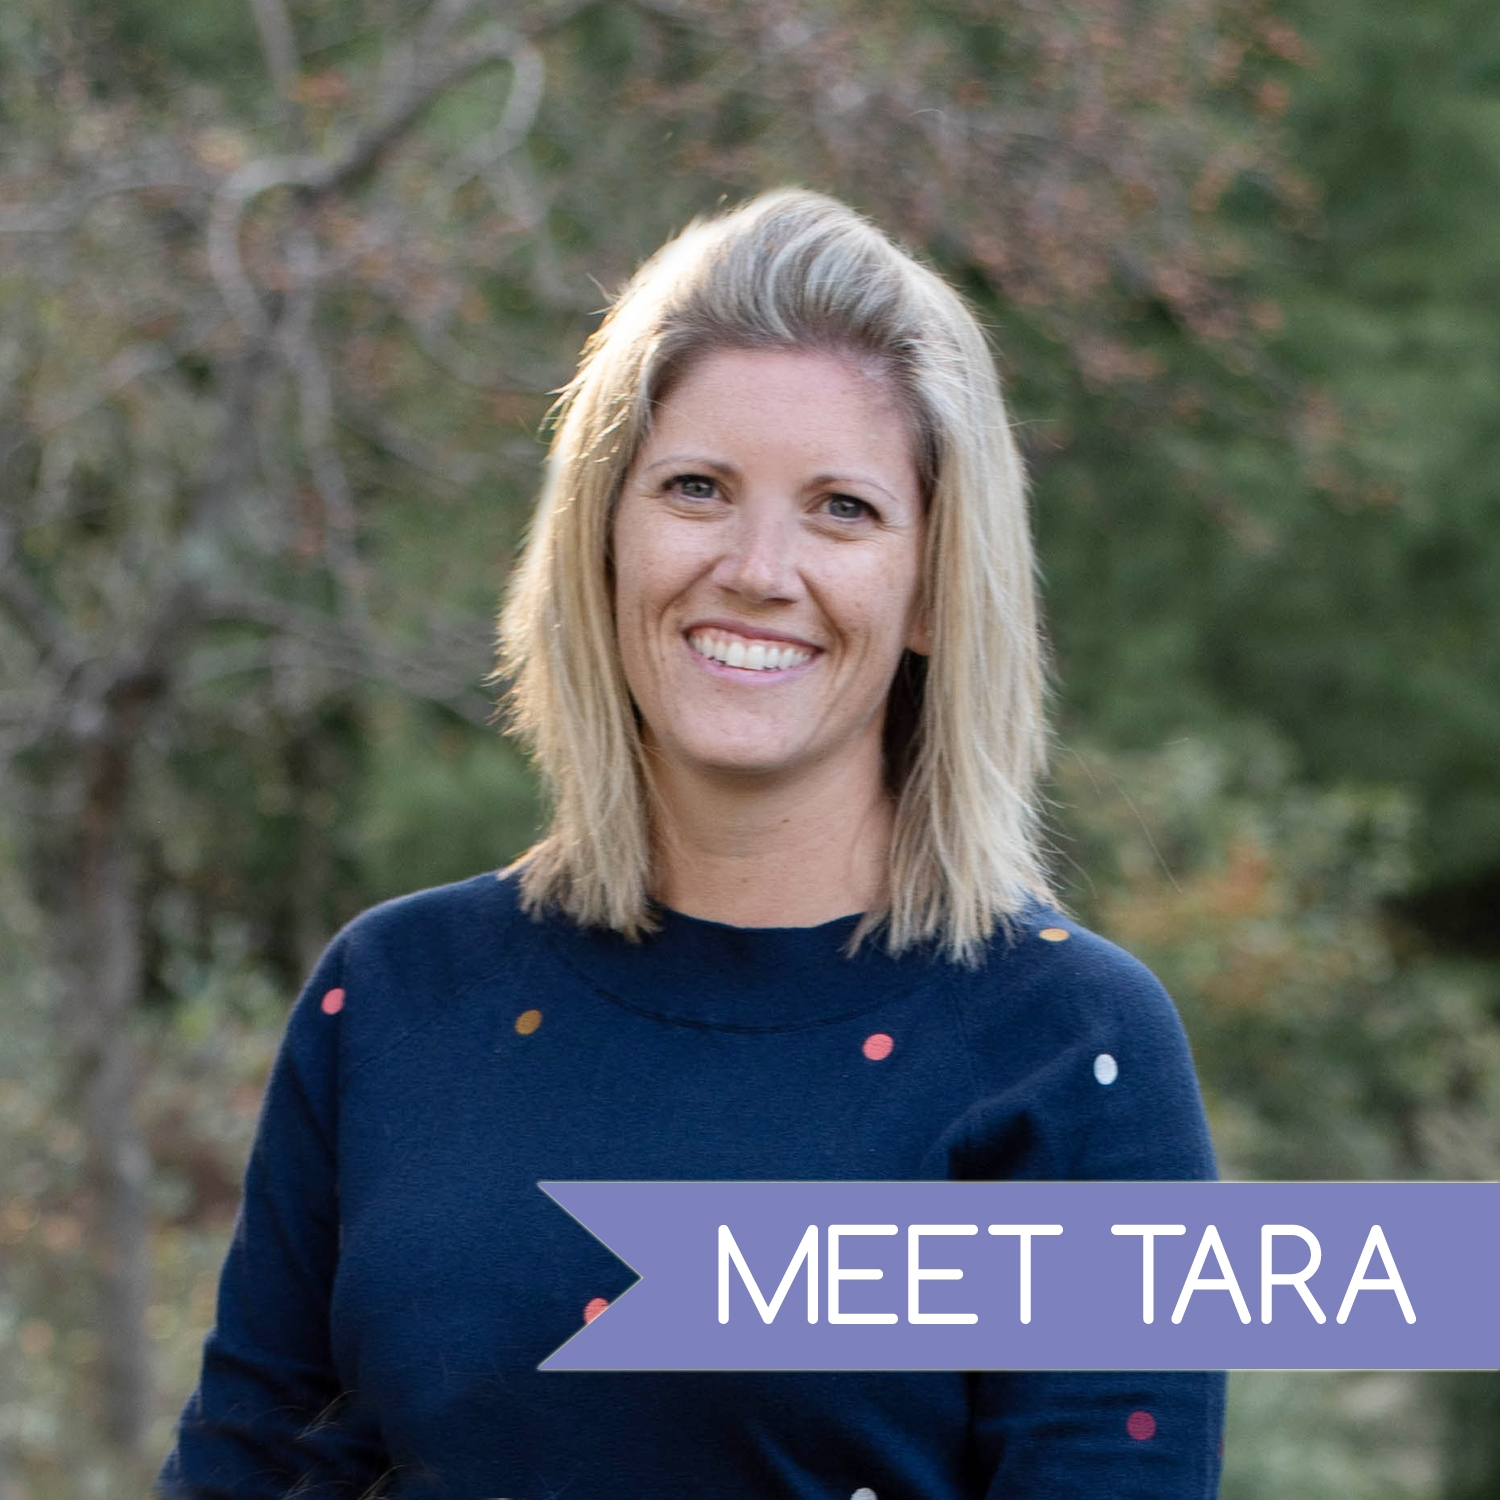 Meet Tara, author of Spot of Tea Designs